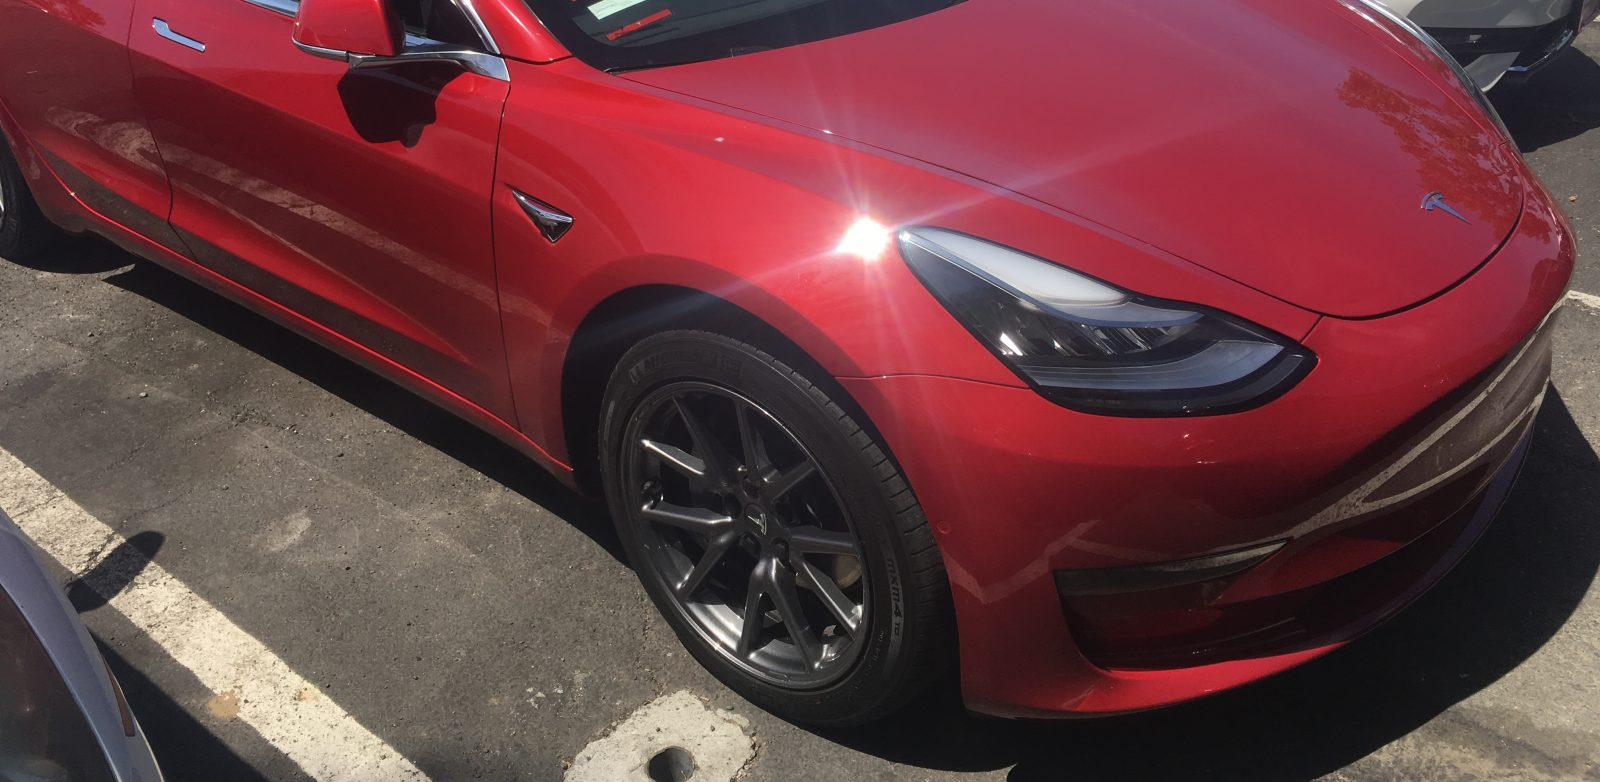 Tesla Model 3 S Aero Wheels Look Awesome Without Their Caps